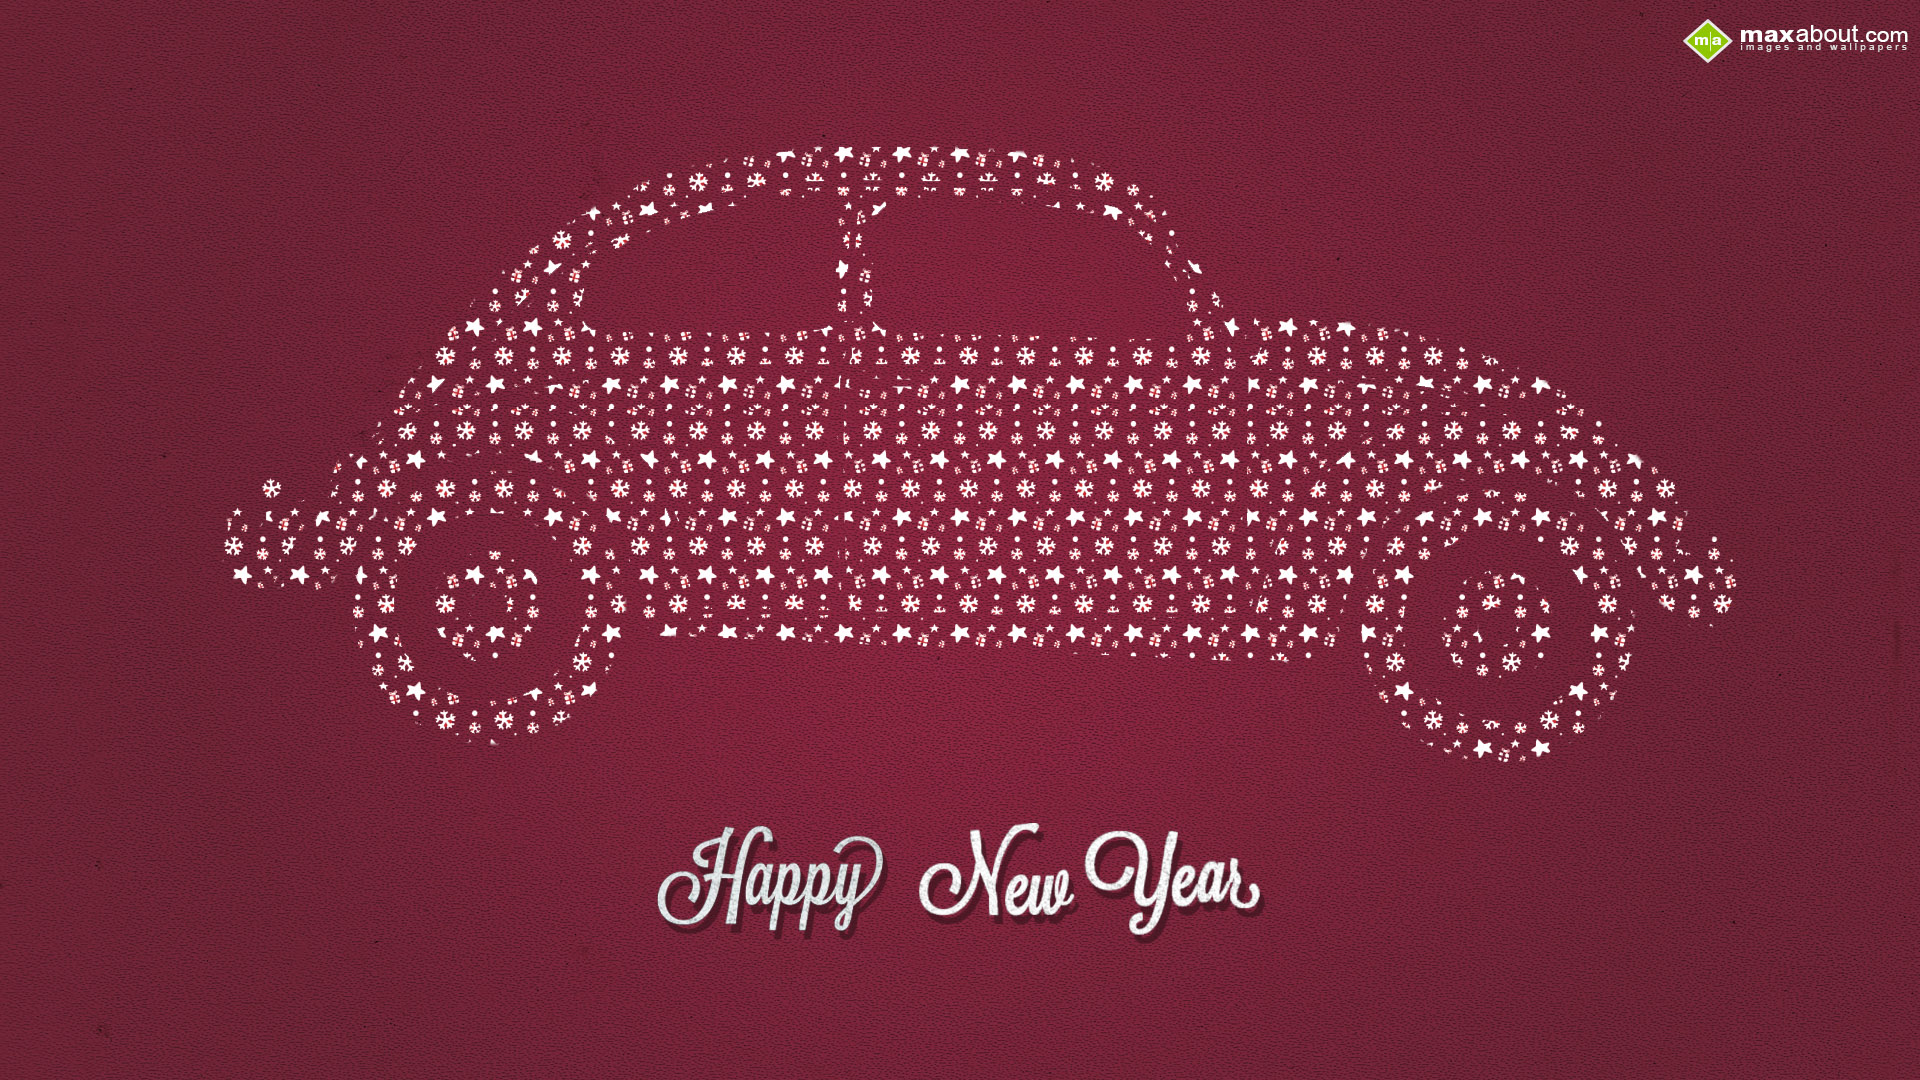 Happy-New-Year-Beetle-wallpaper-wallpaper-wp4807116